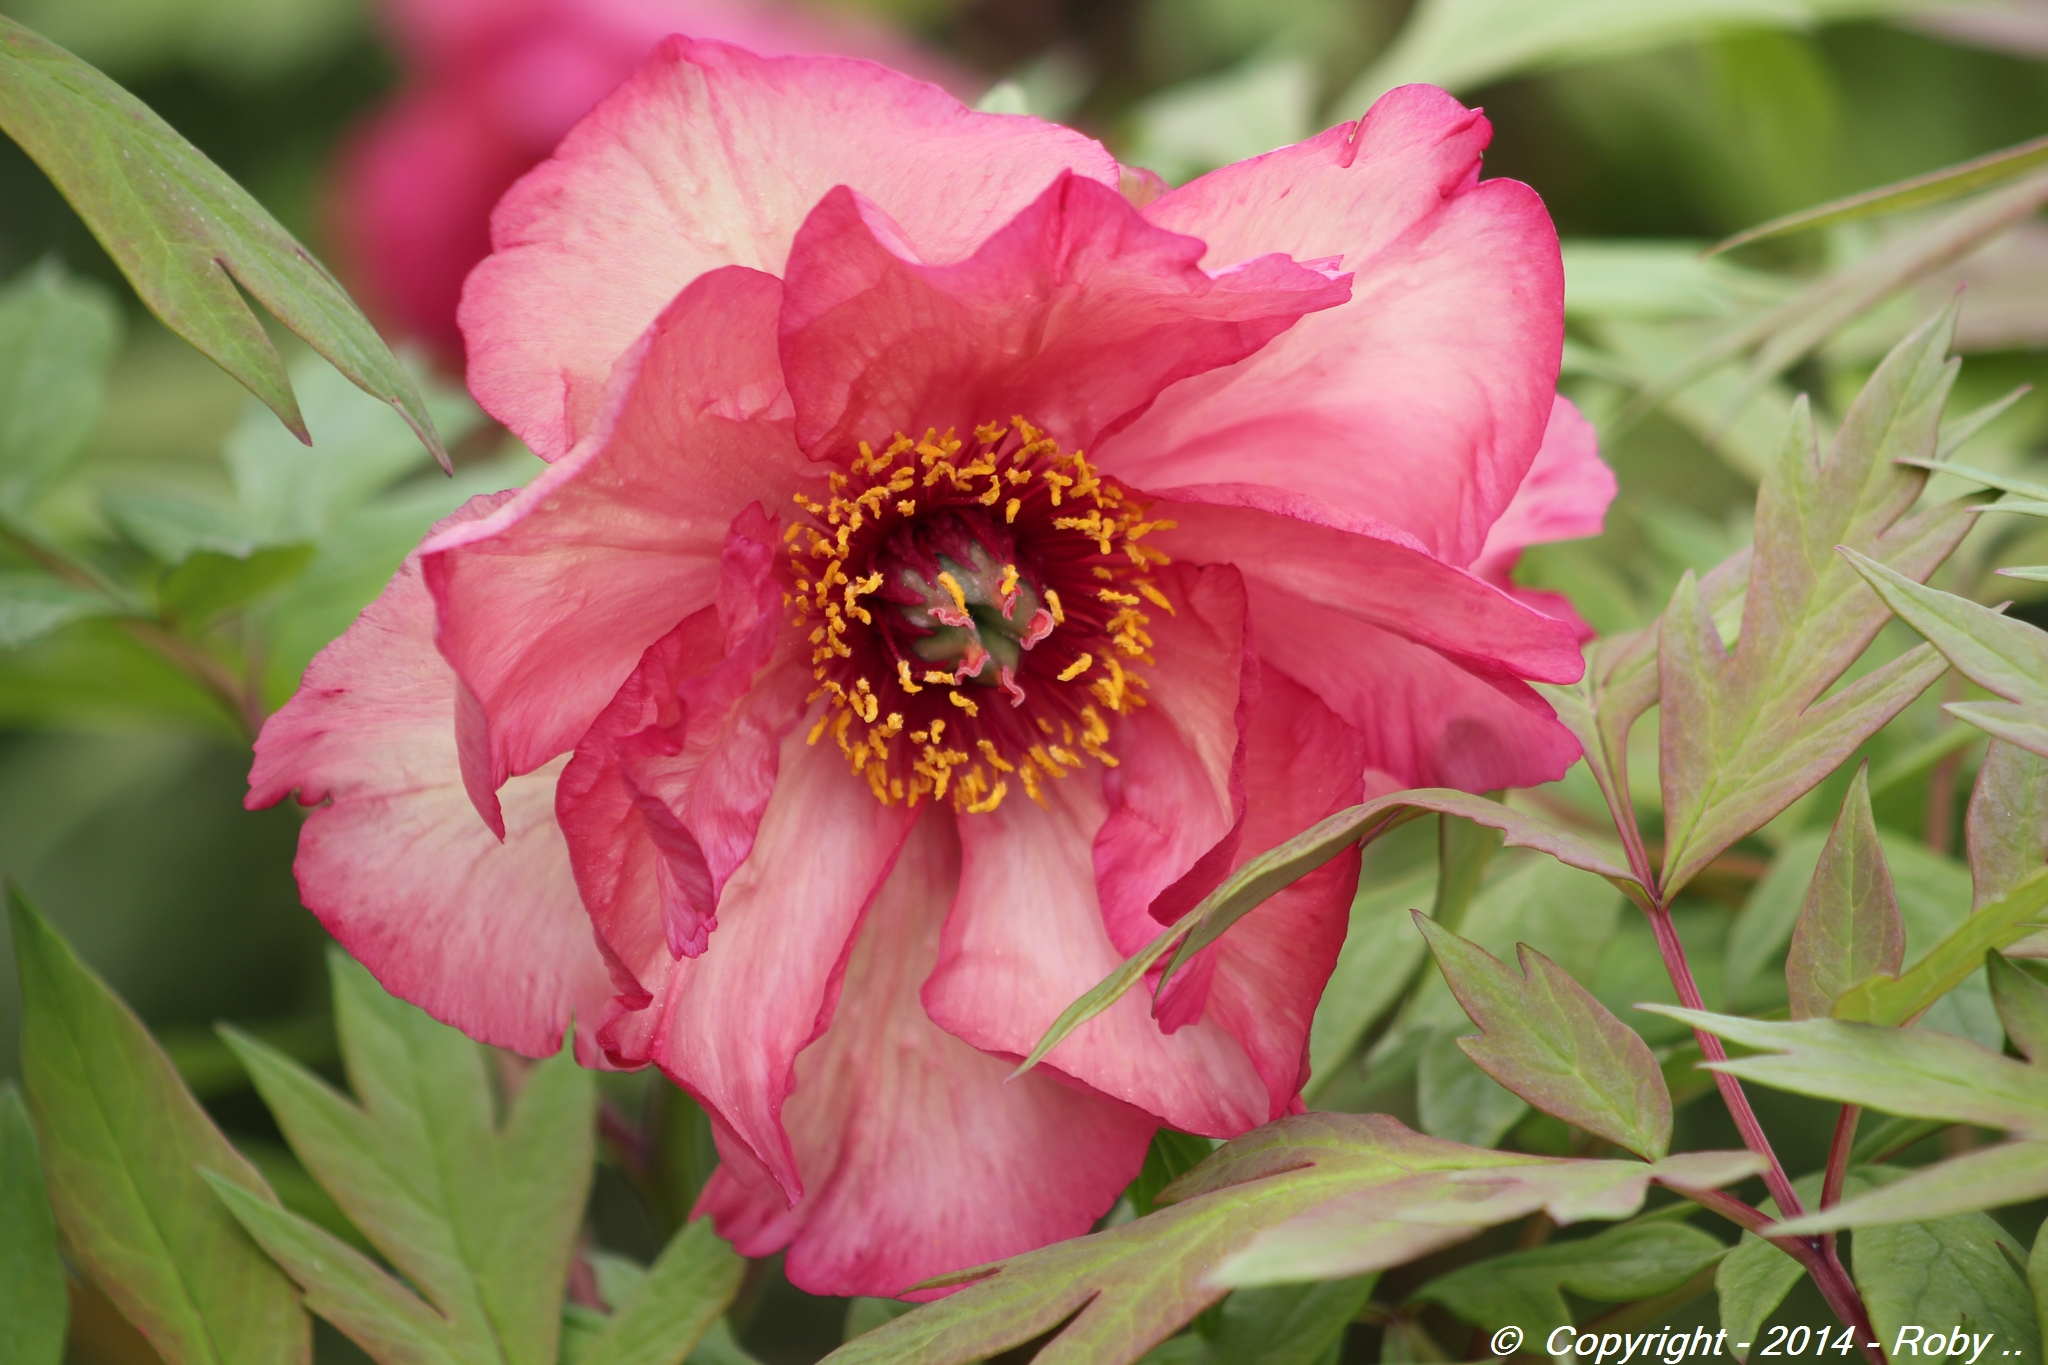 Paeonia - Roby 2014 - IMG_7002